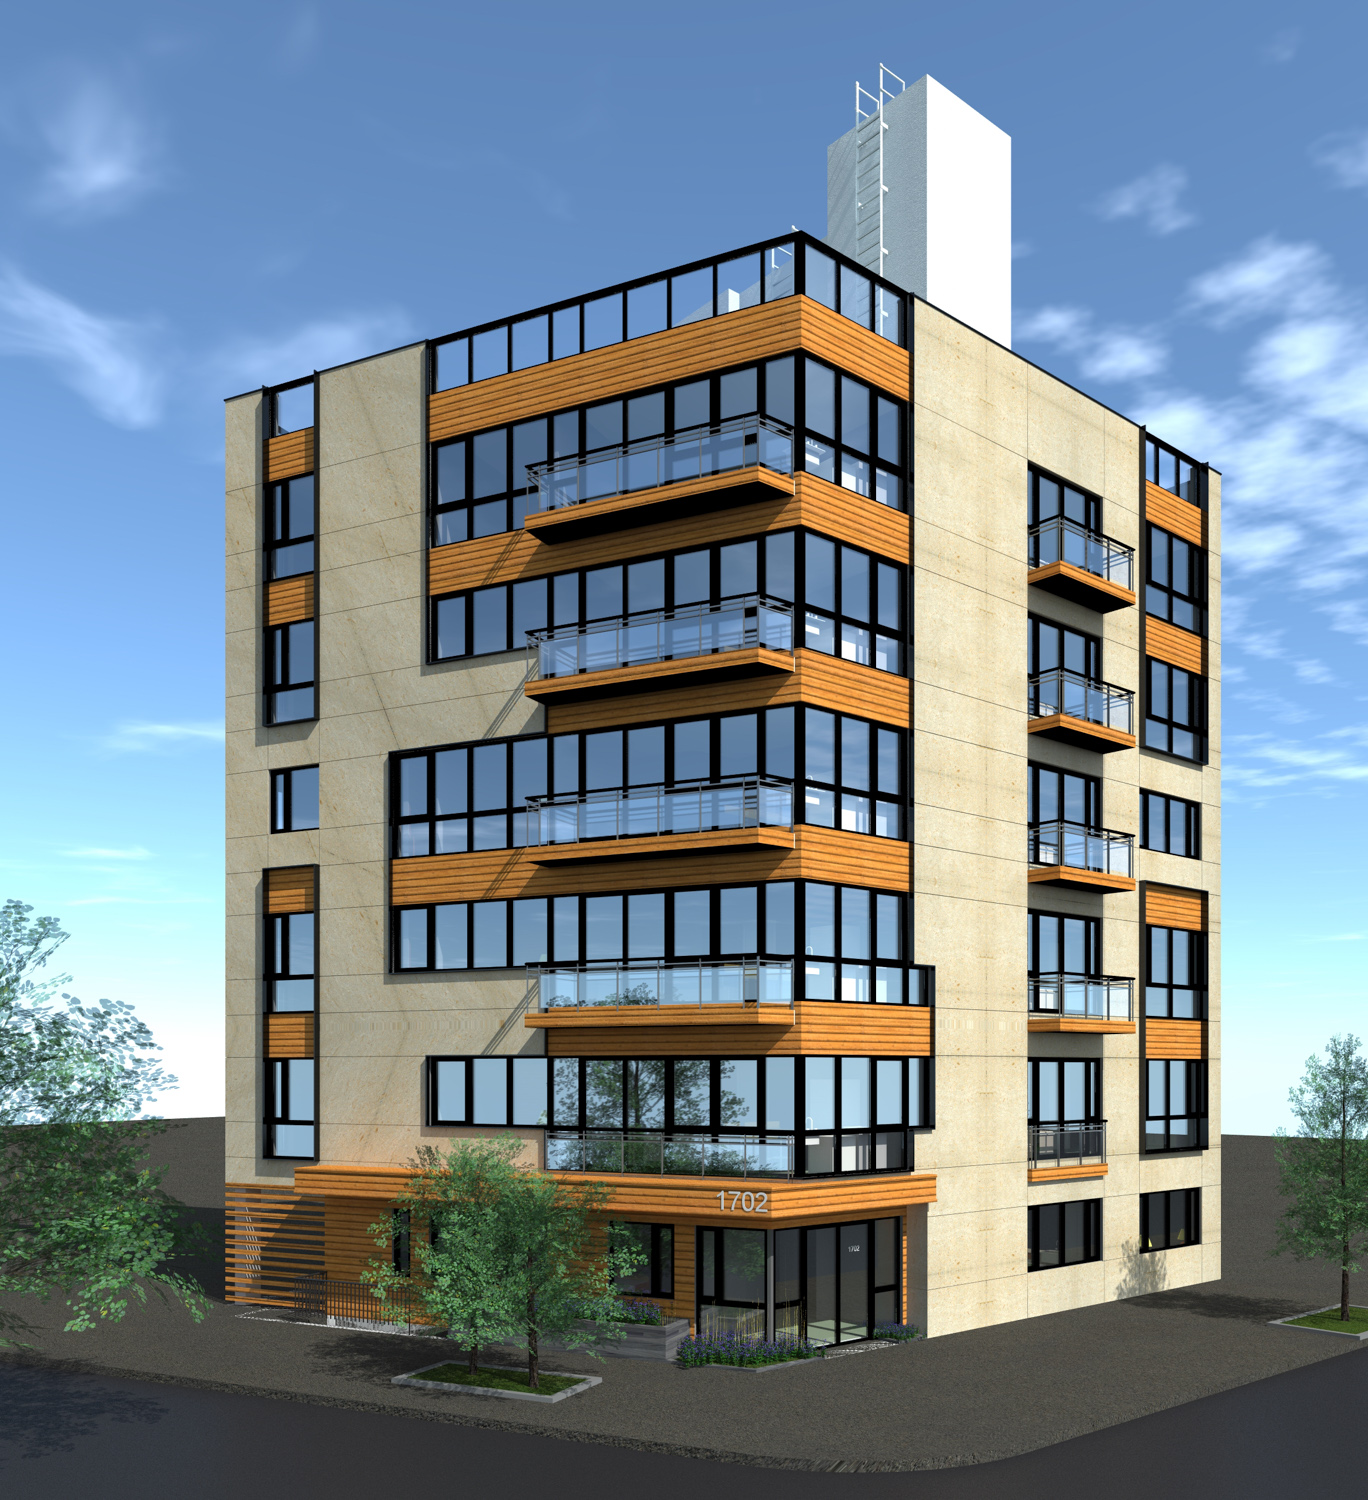 1702 Newkirk Avenue Corner View, rendering by Bizdesigns